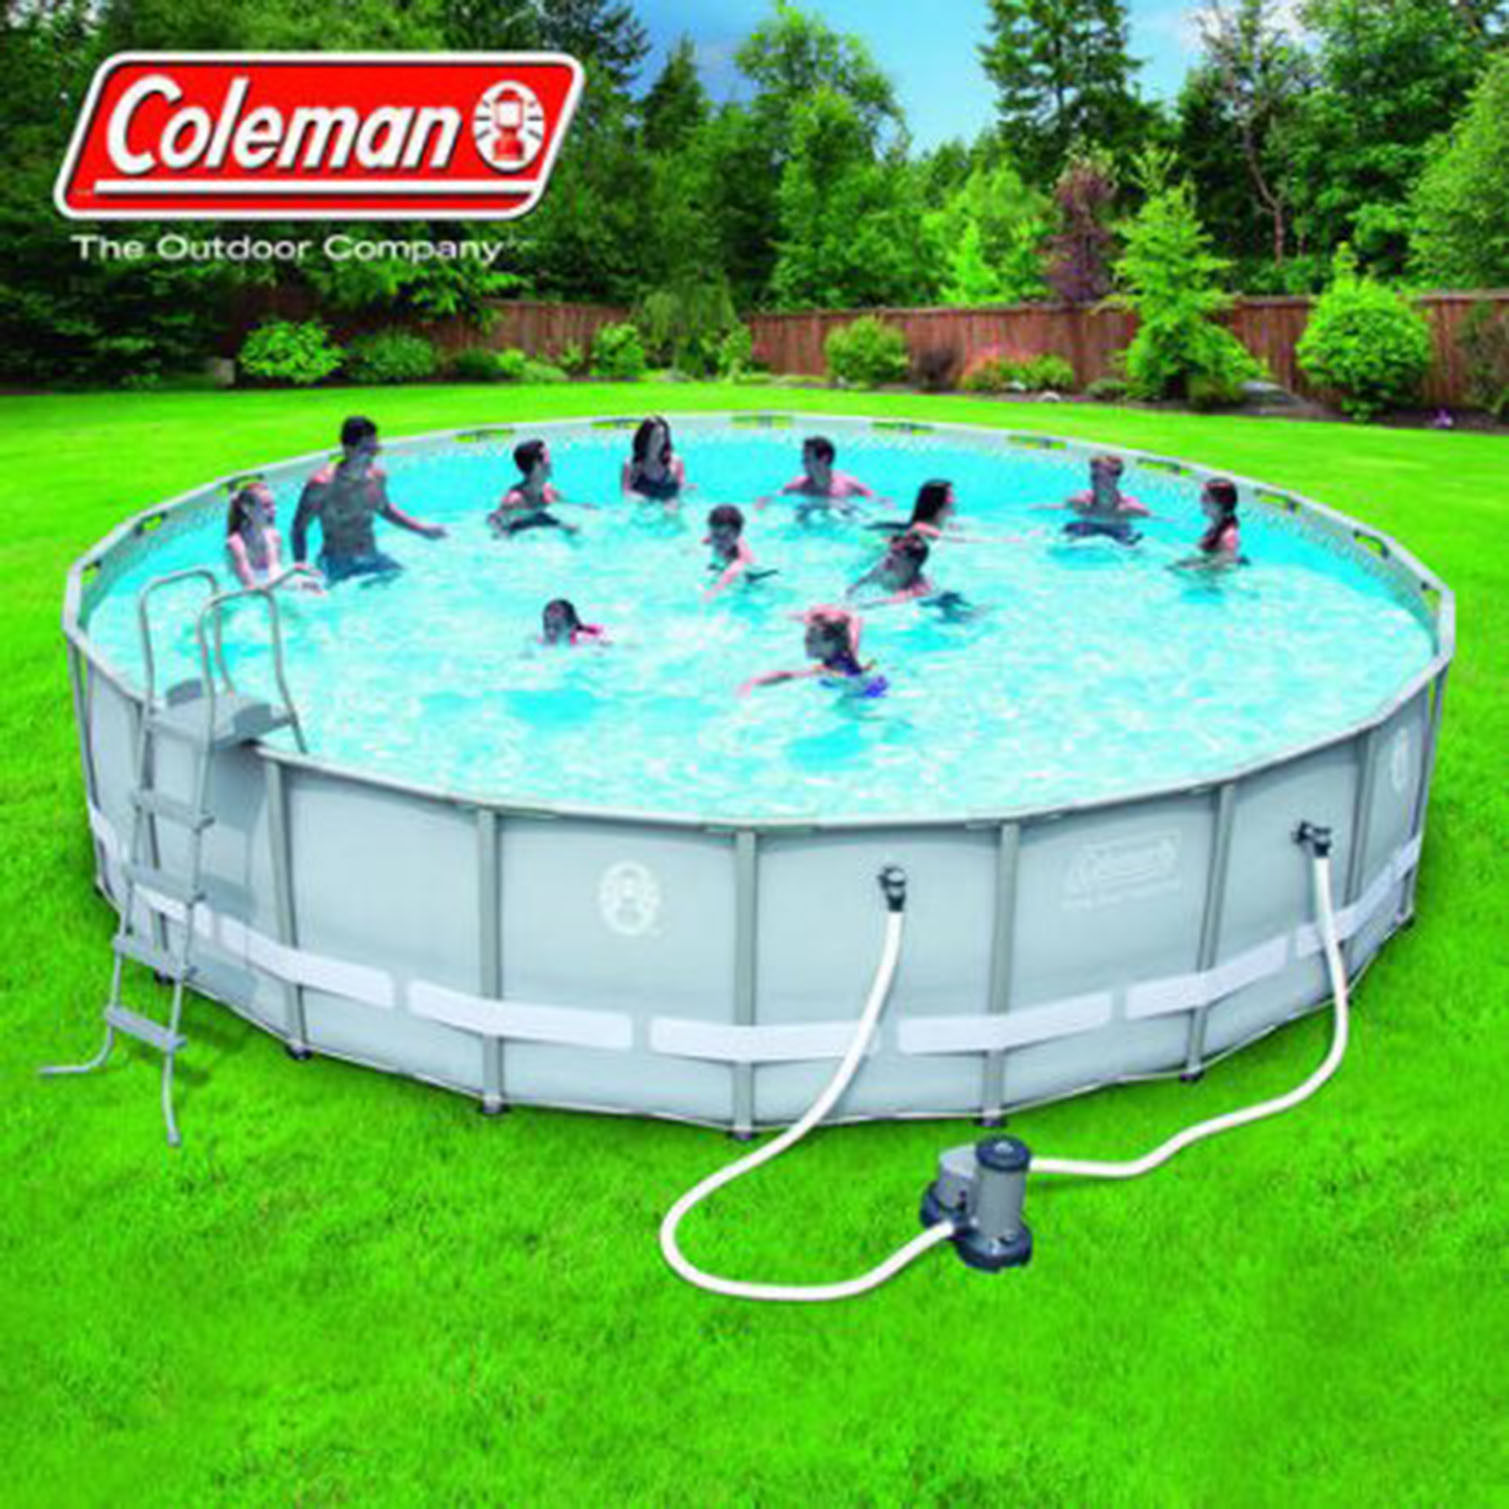 Coleman swimming pool 2 customer reviews and 4 listings for Above swimming pools